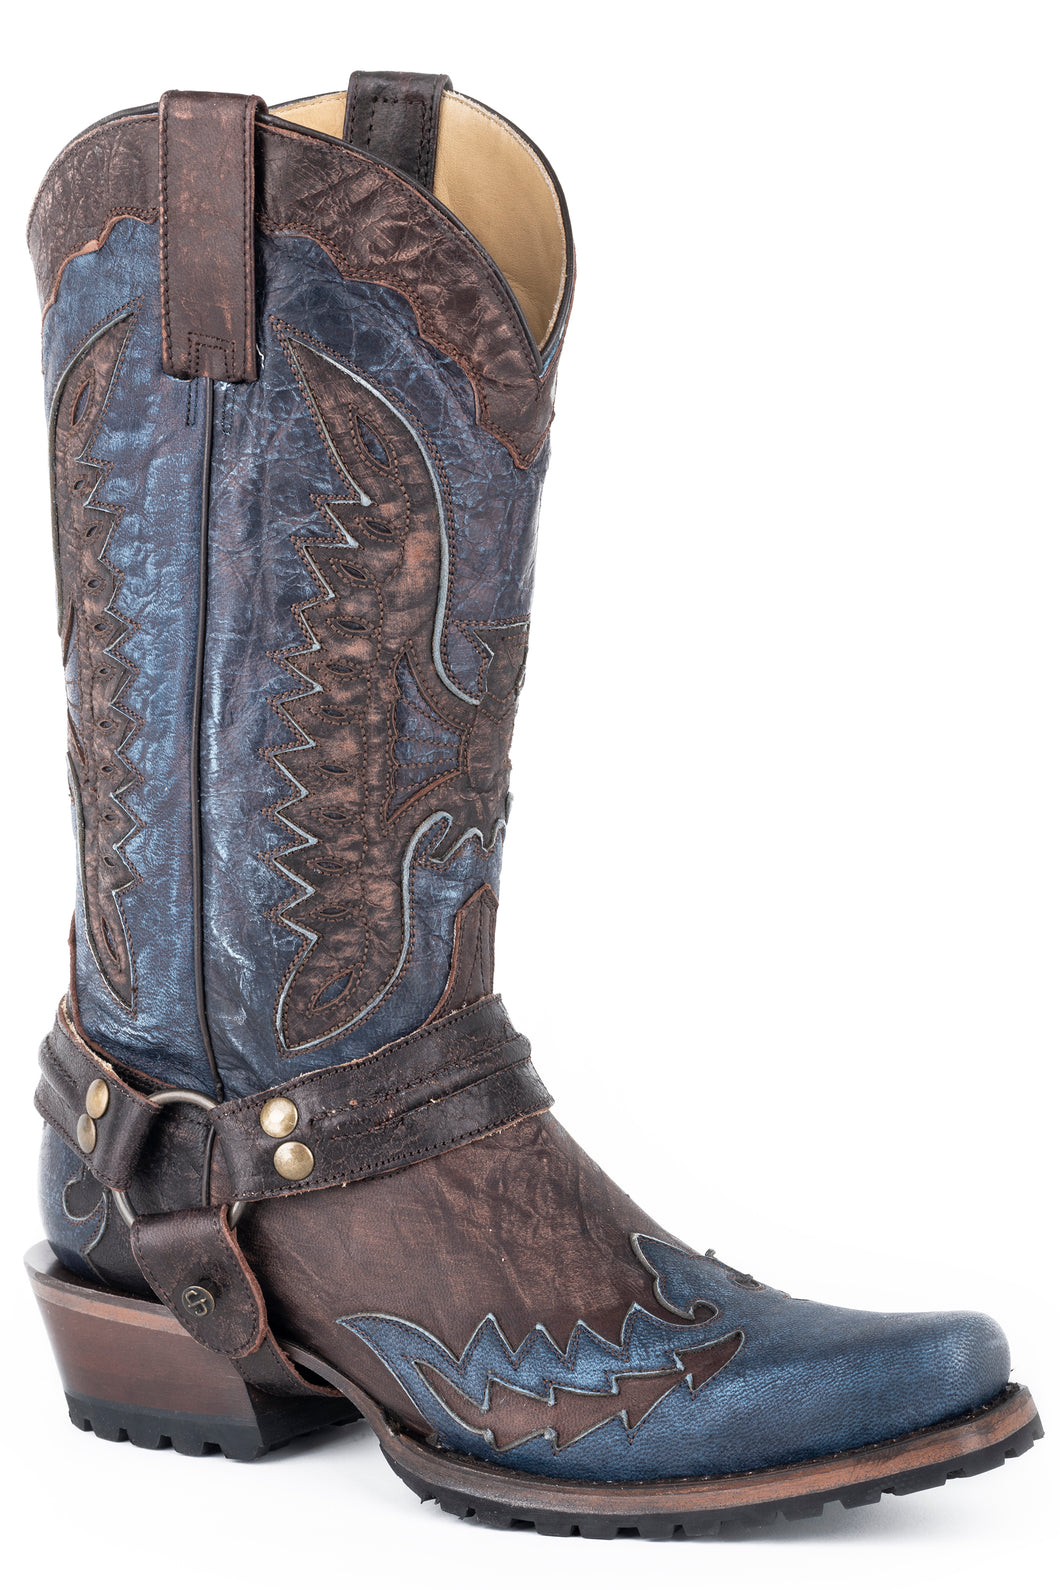 Outlaw Eagle Biker Boot Mens Boots Distressed Brown Vamp Wblue Wingtip